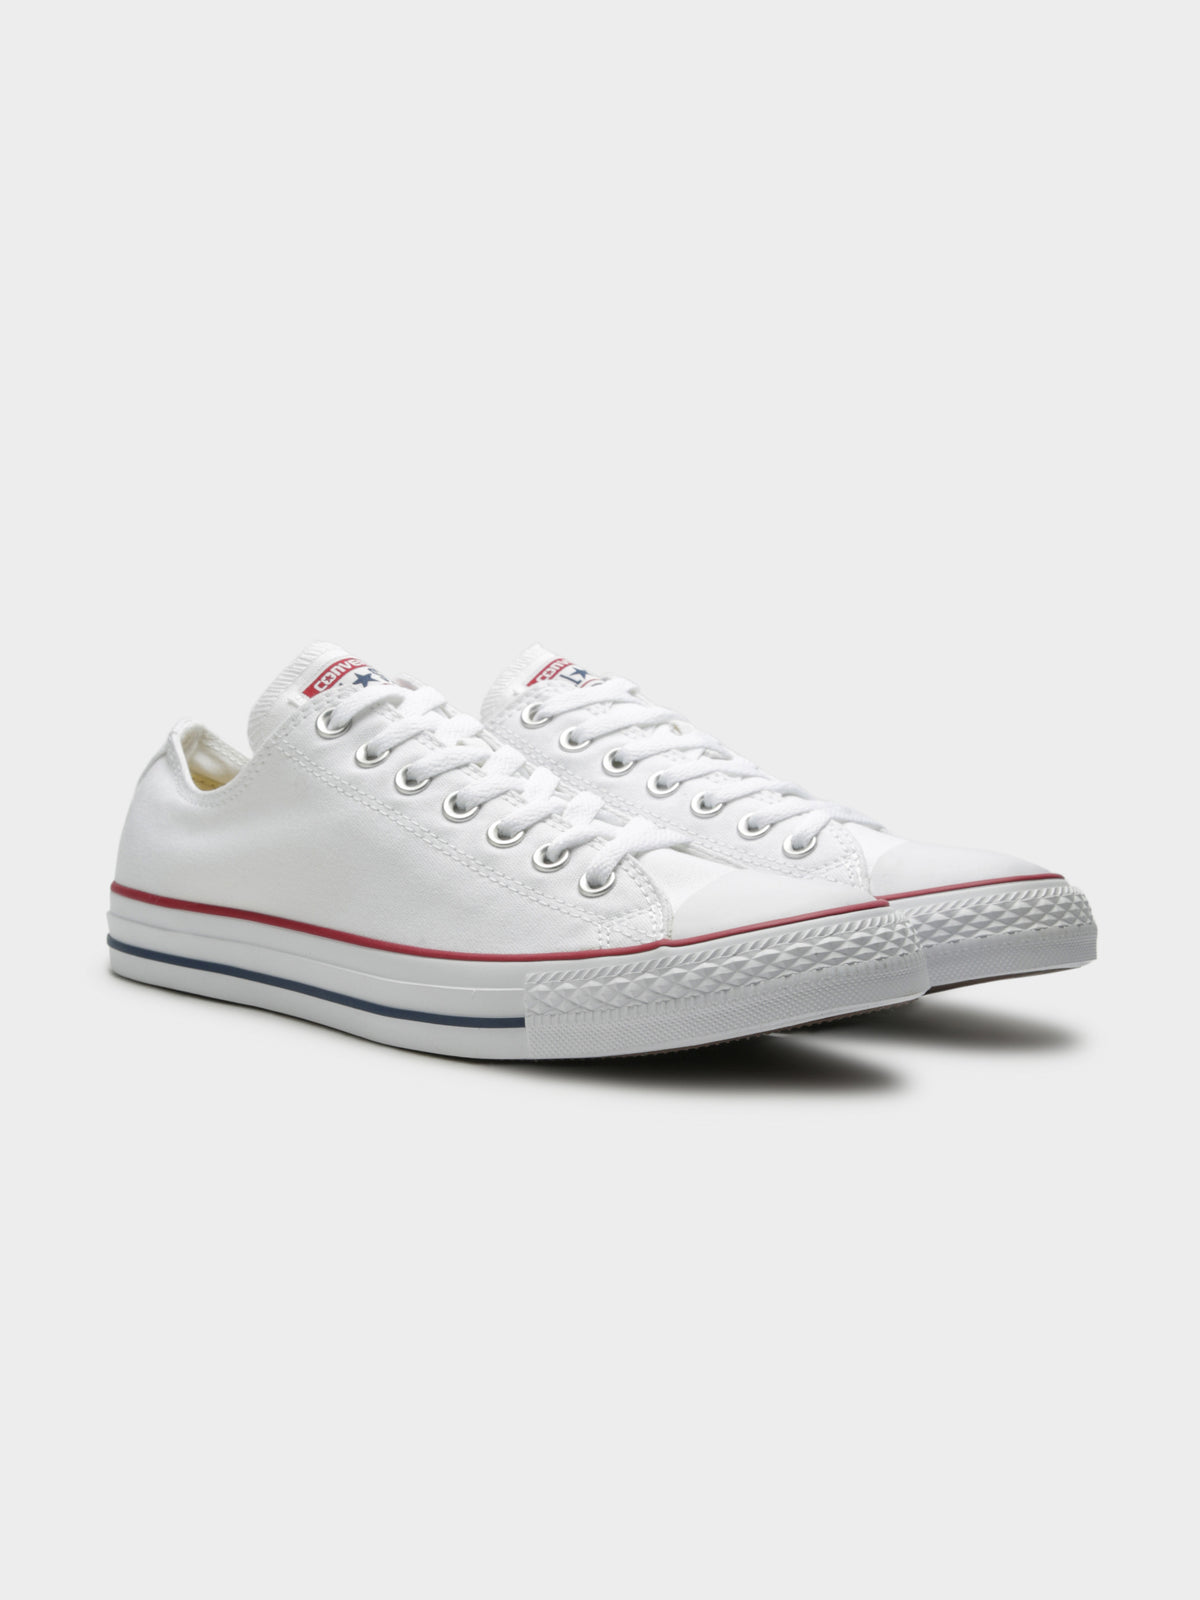 Unisex Chuck Taylor All Star Classic Low-Top Sneakers in White